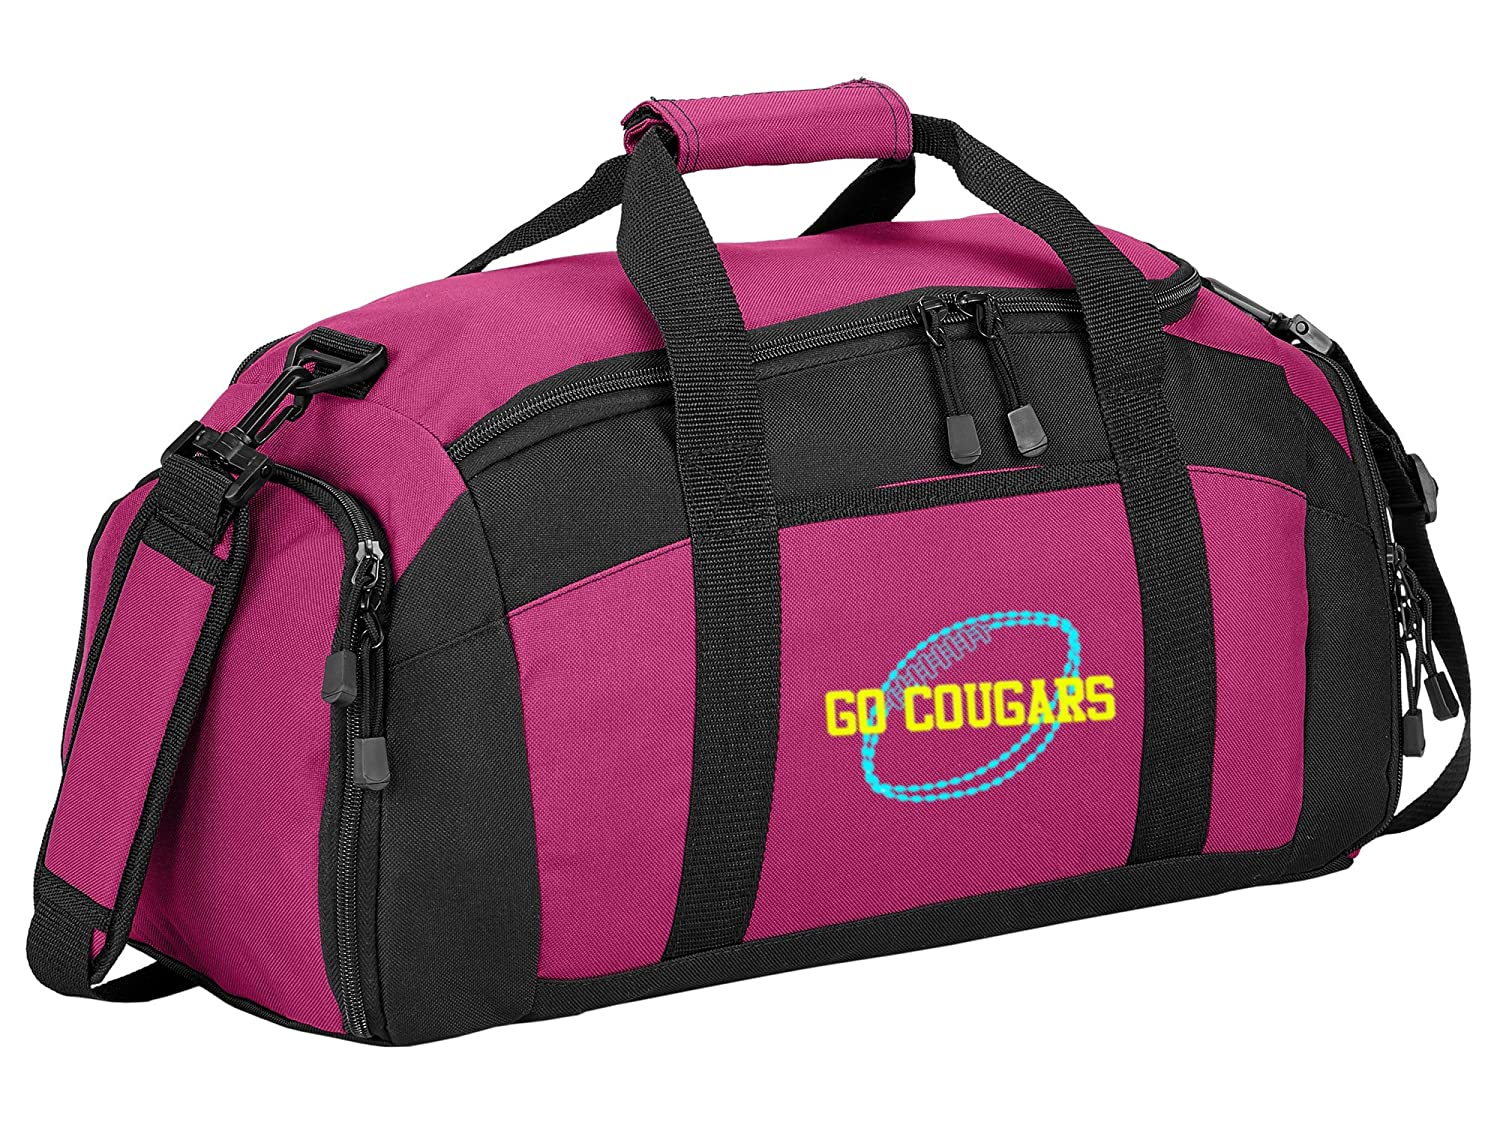 Gold all about me company Personalized Football Gym Sports Duffel Bag